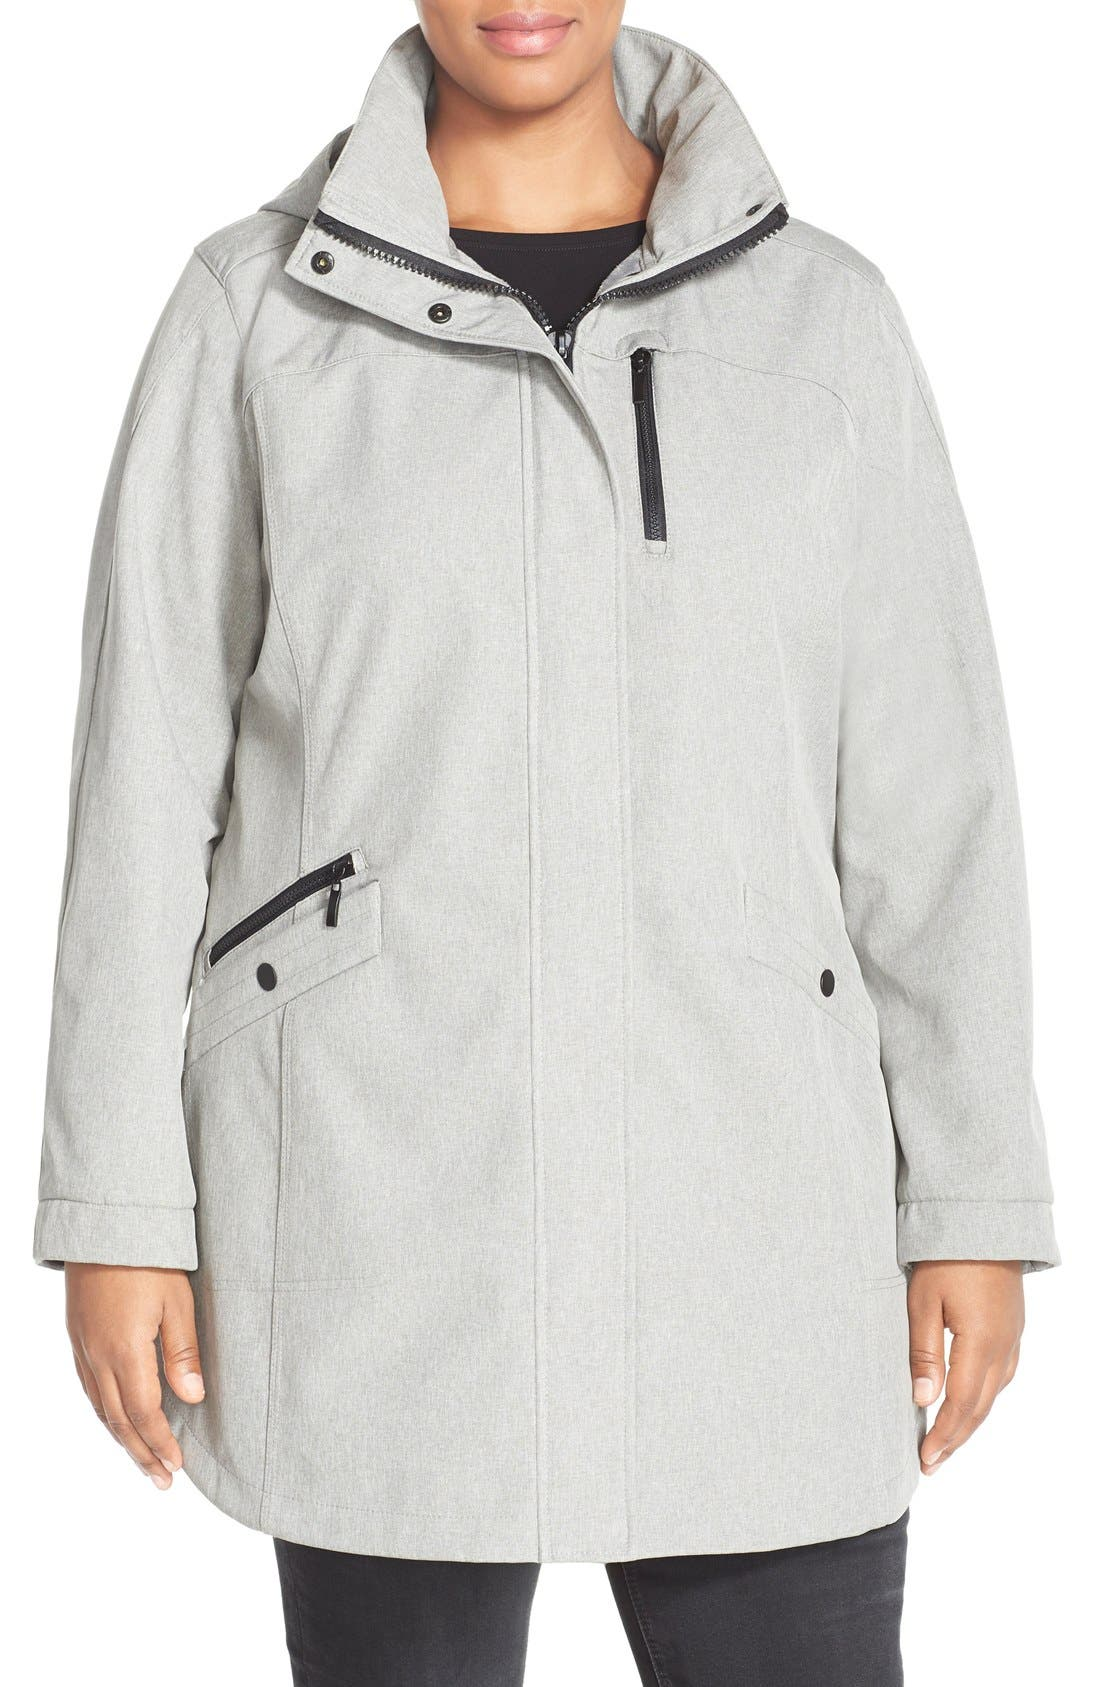 Kristen Blake Crossdye Hooded Soft Shell Jacket (Plus Size)